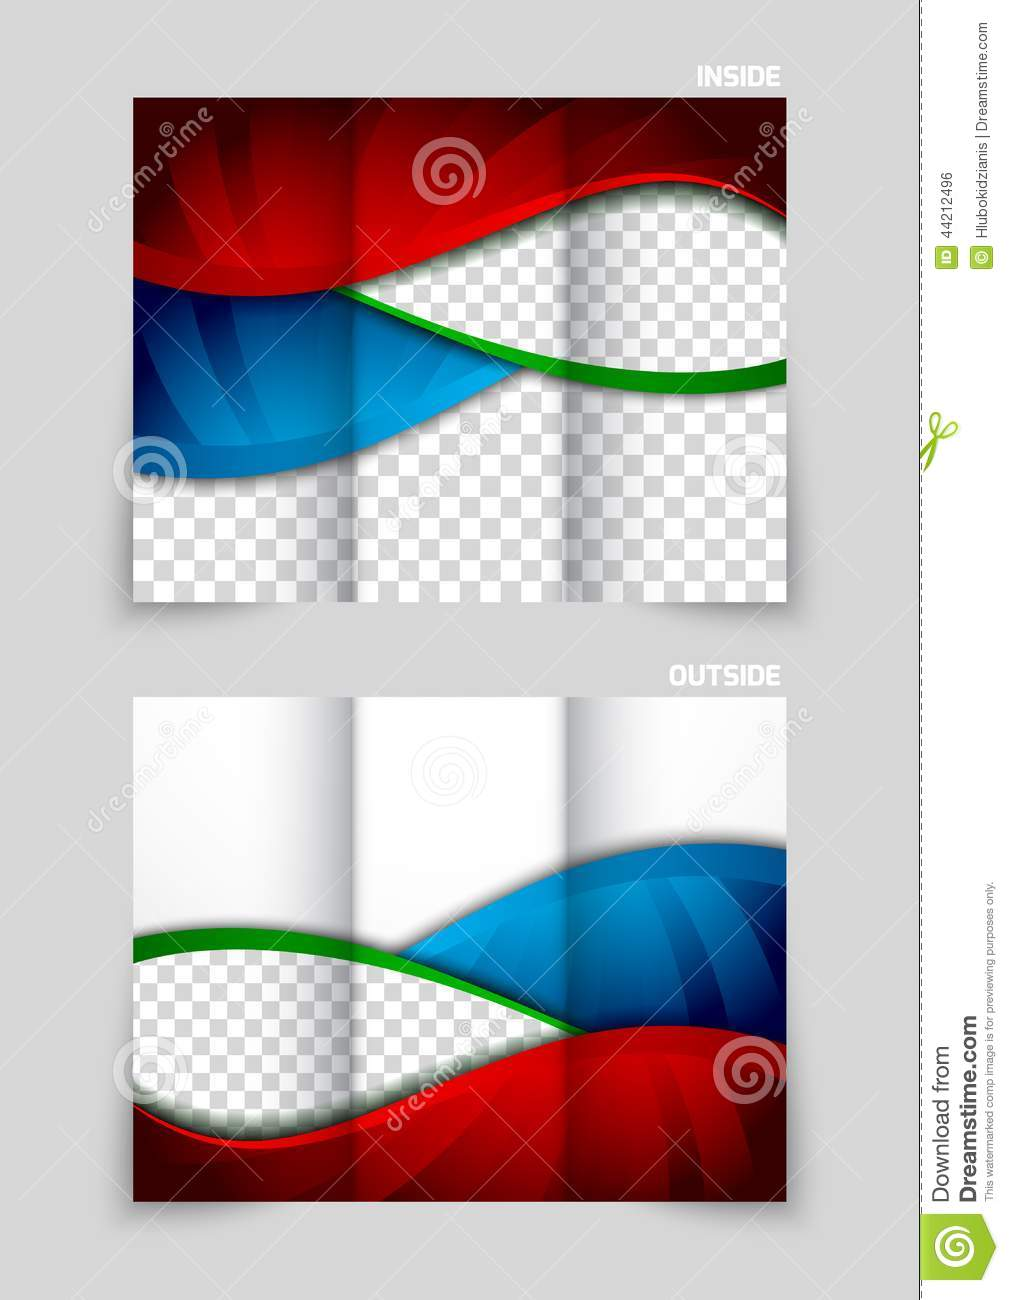 Tri fold brochure template design stock vector for Tri fold brochure design templates